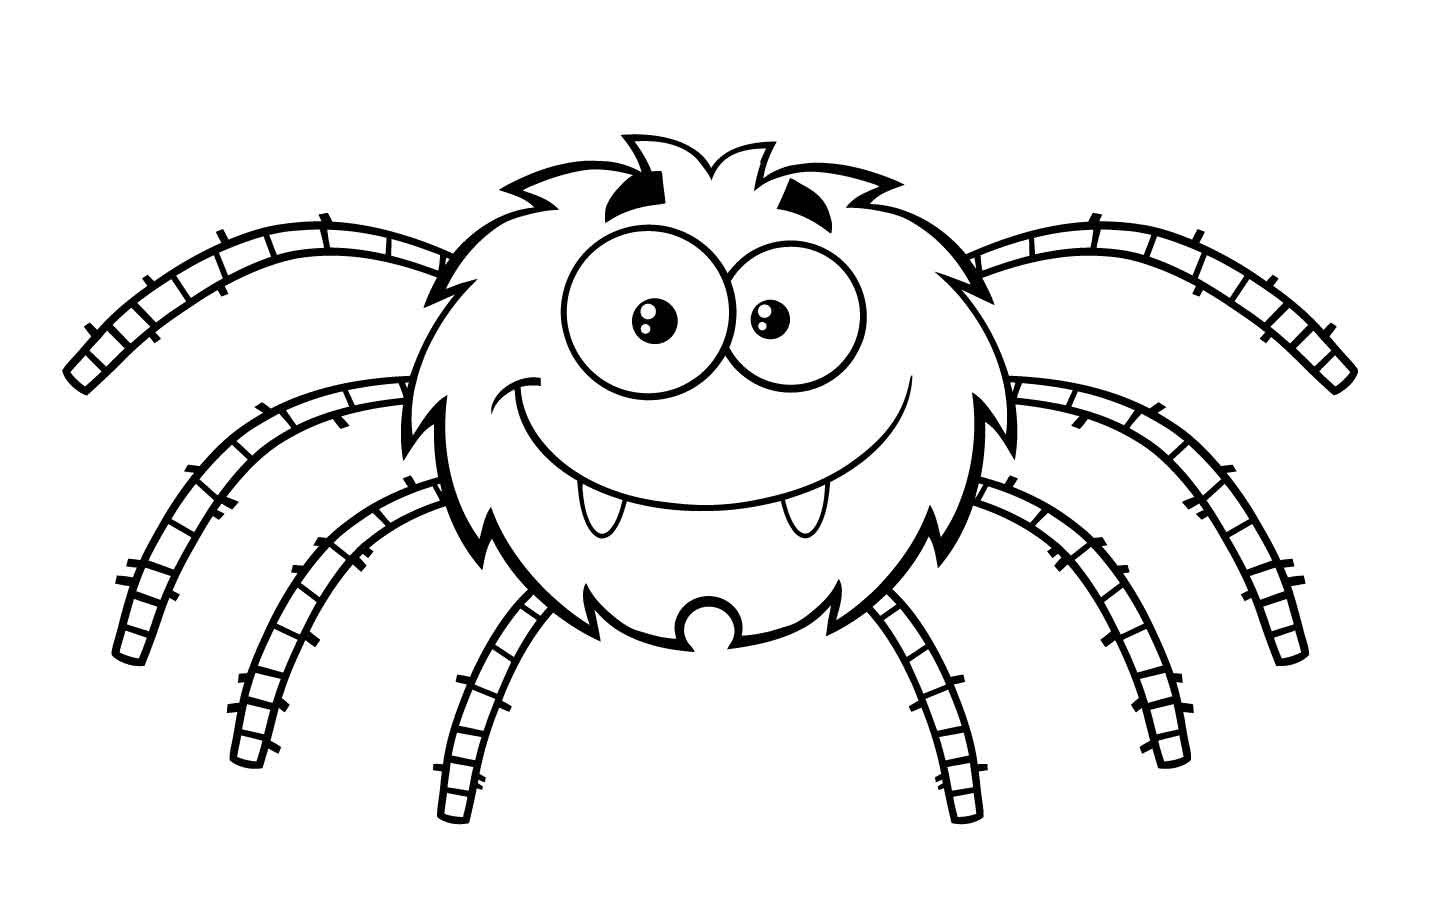 Best ideas about Spider Printable Coloring Pages . Save or Pin Free Printable Spider Coloring Pages For Kids Now.